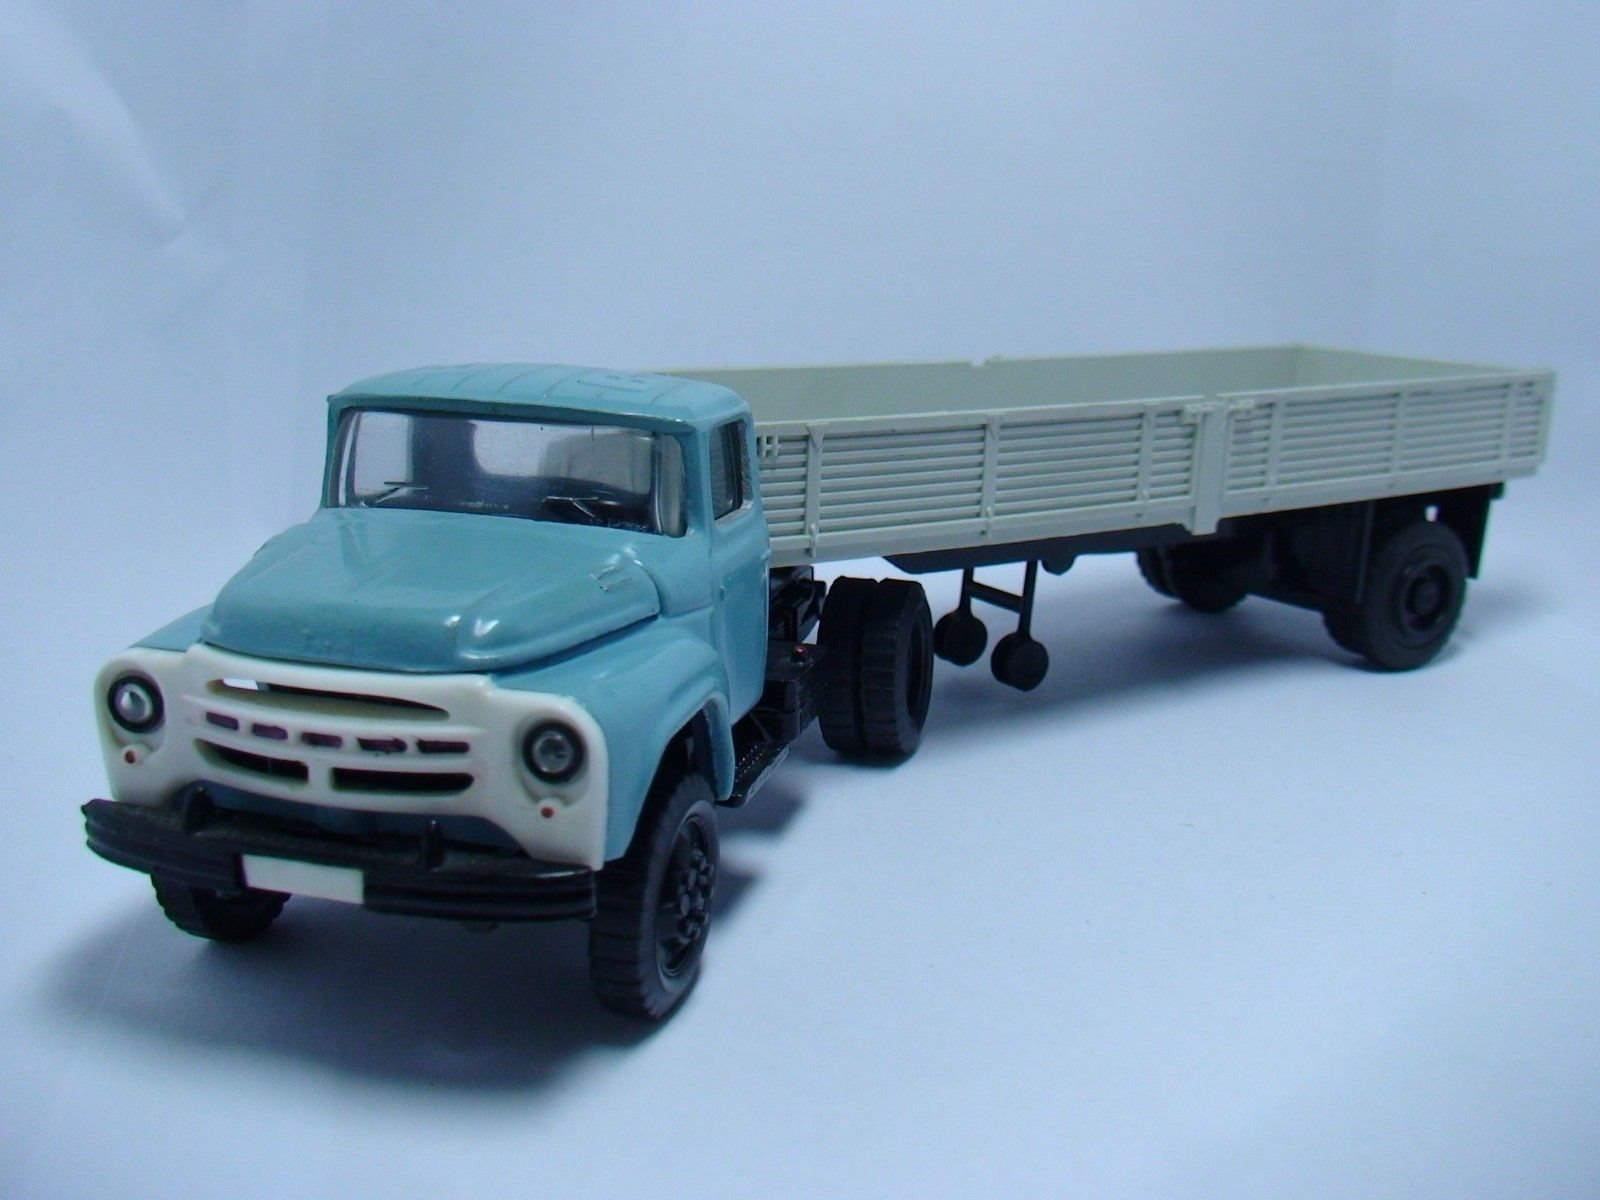 MODELL ZIL-130B1 SOVIET USSR SCALE MODEL 1:43 1/43 MODELCAR METAL COLLECTION